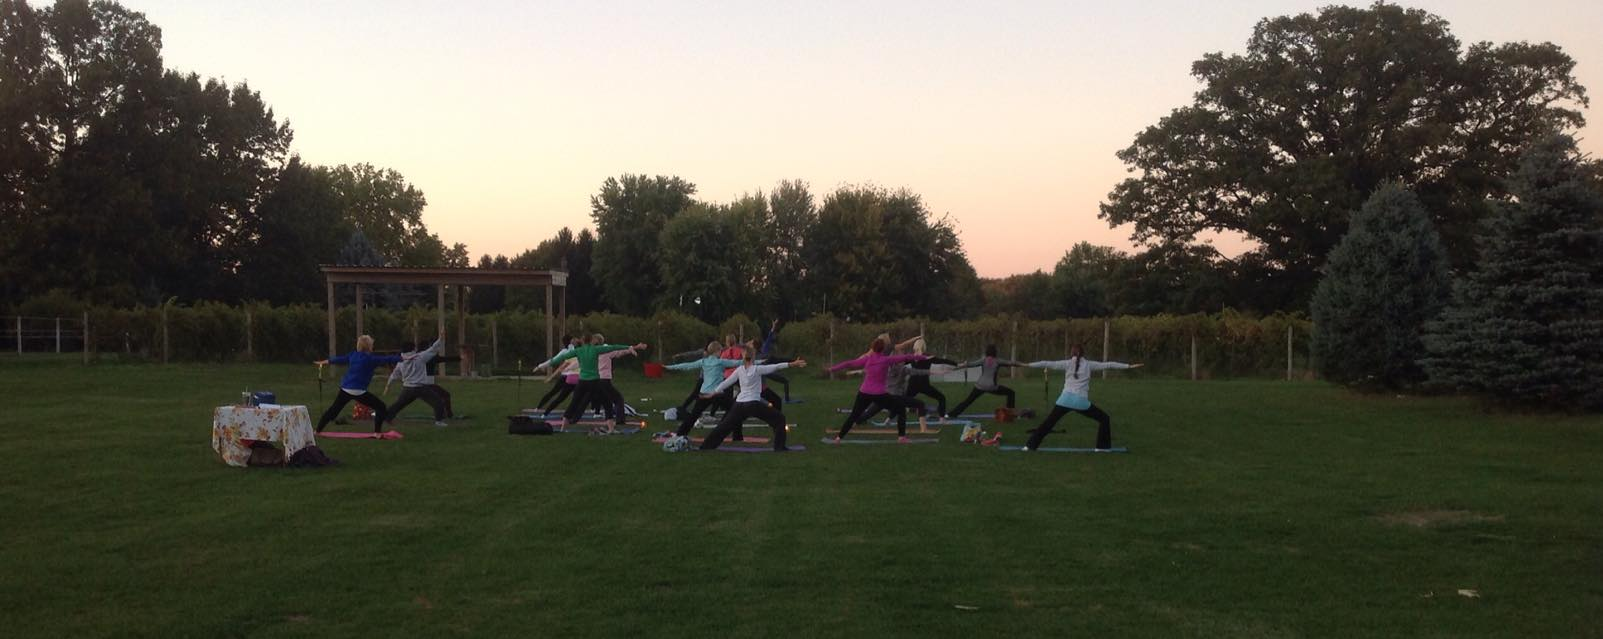 Yoga at the winery.jpg